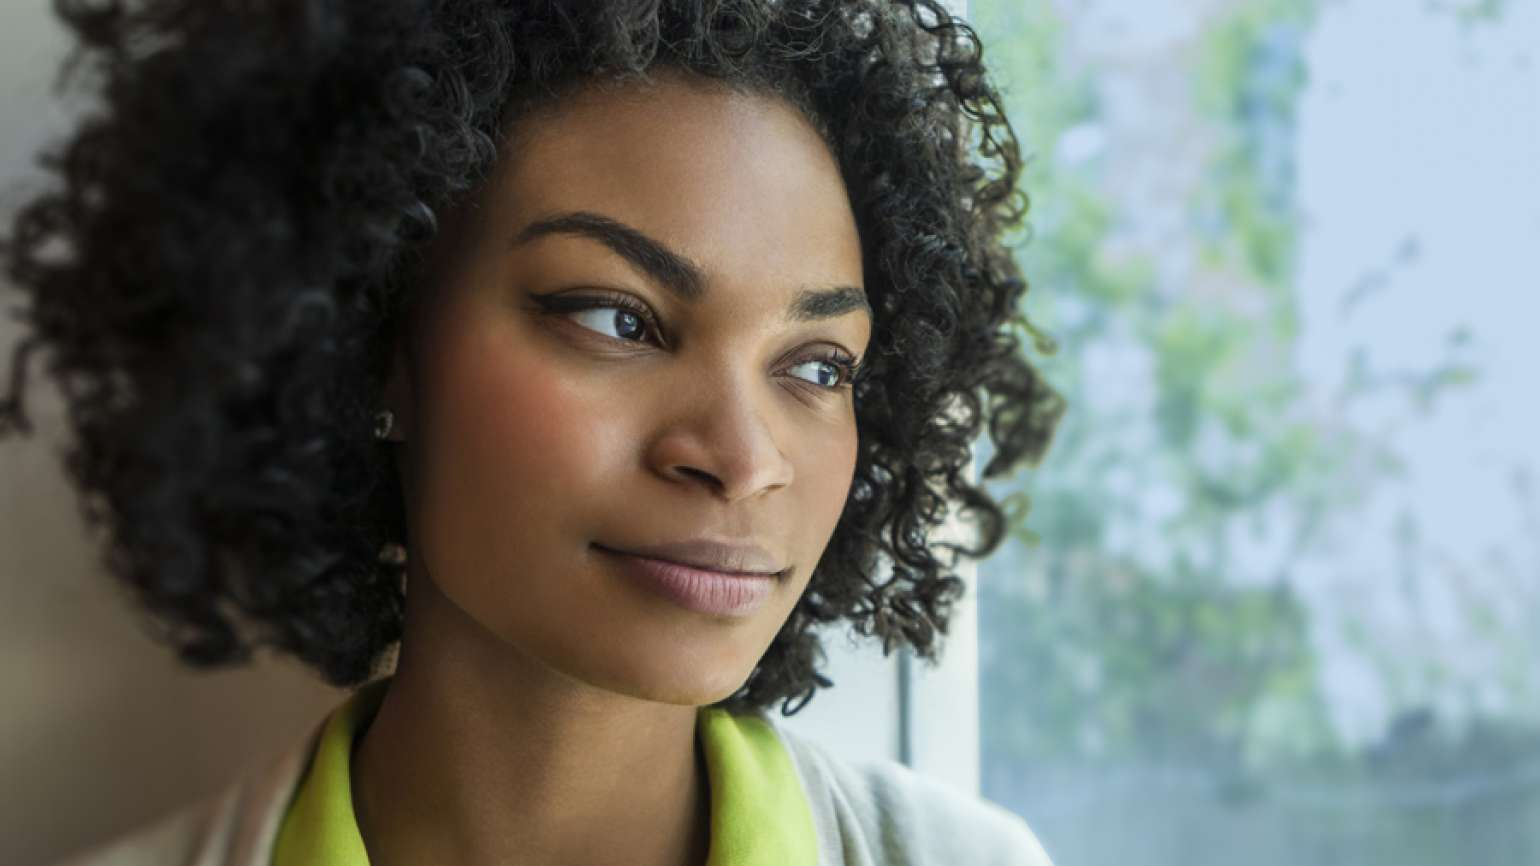 Guideposts: A woman gazes thoughtful out a window.